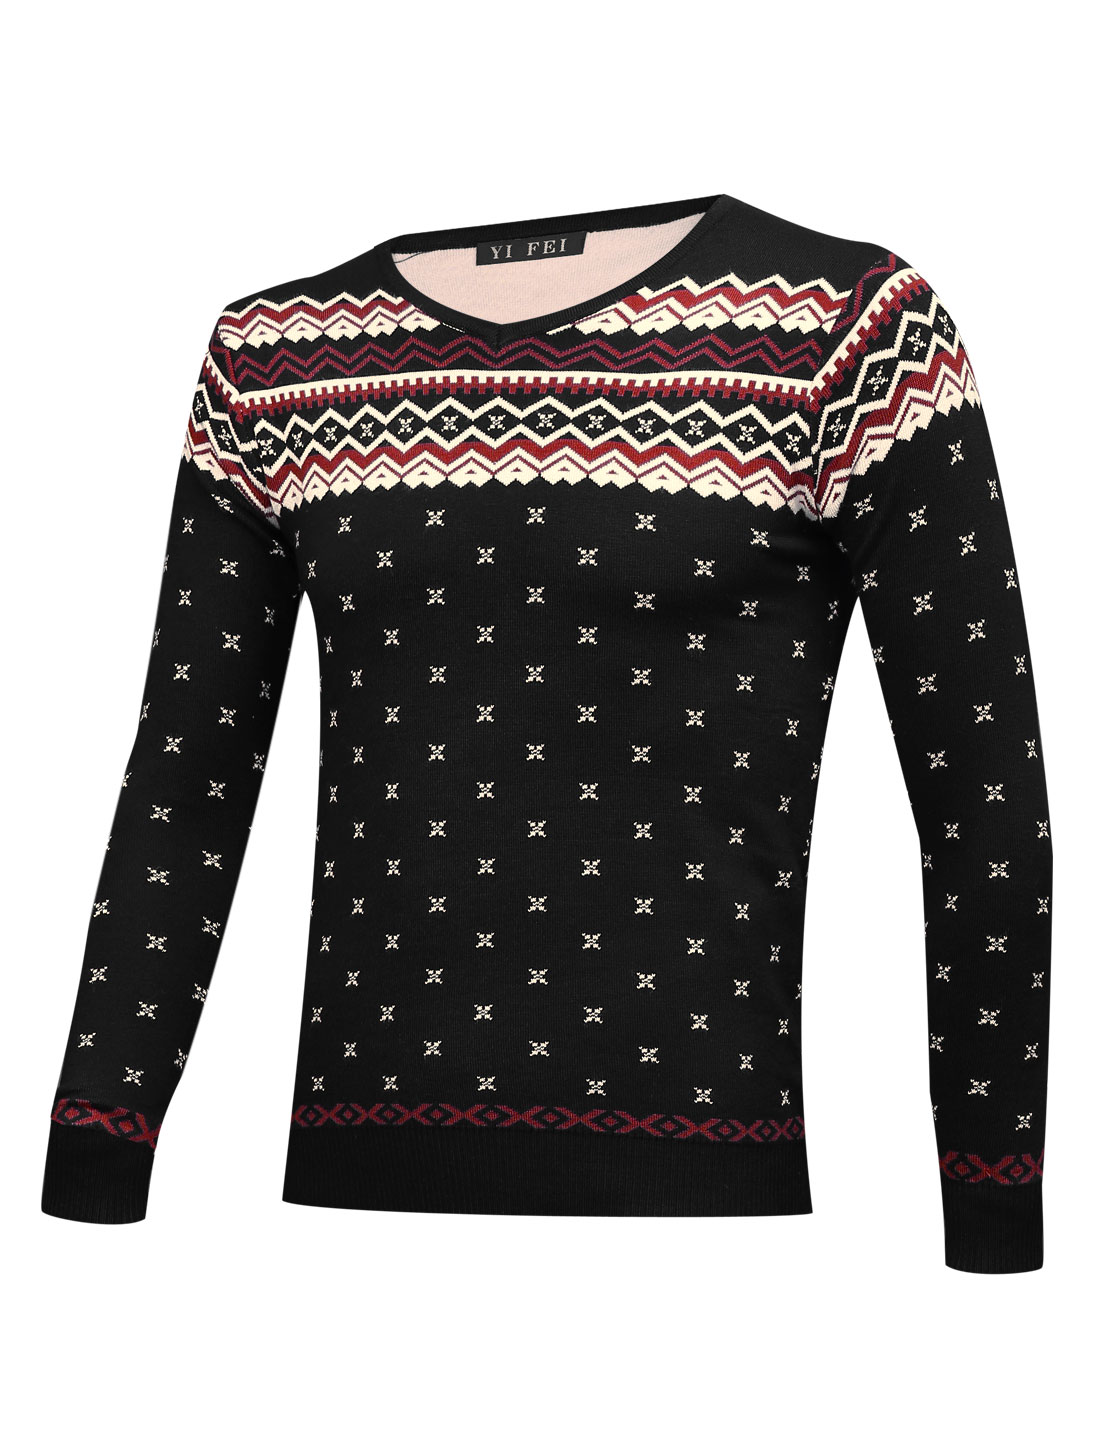 Men V Neck Geometric Pattern Long Sleeves Sweater Black S